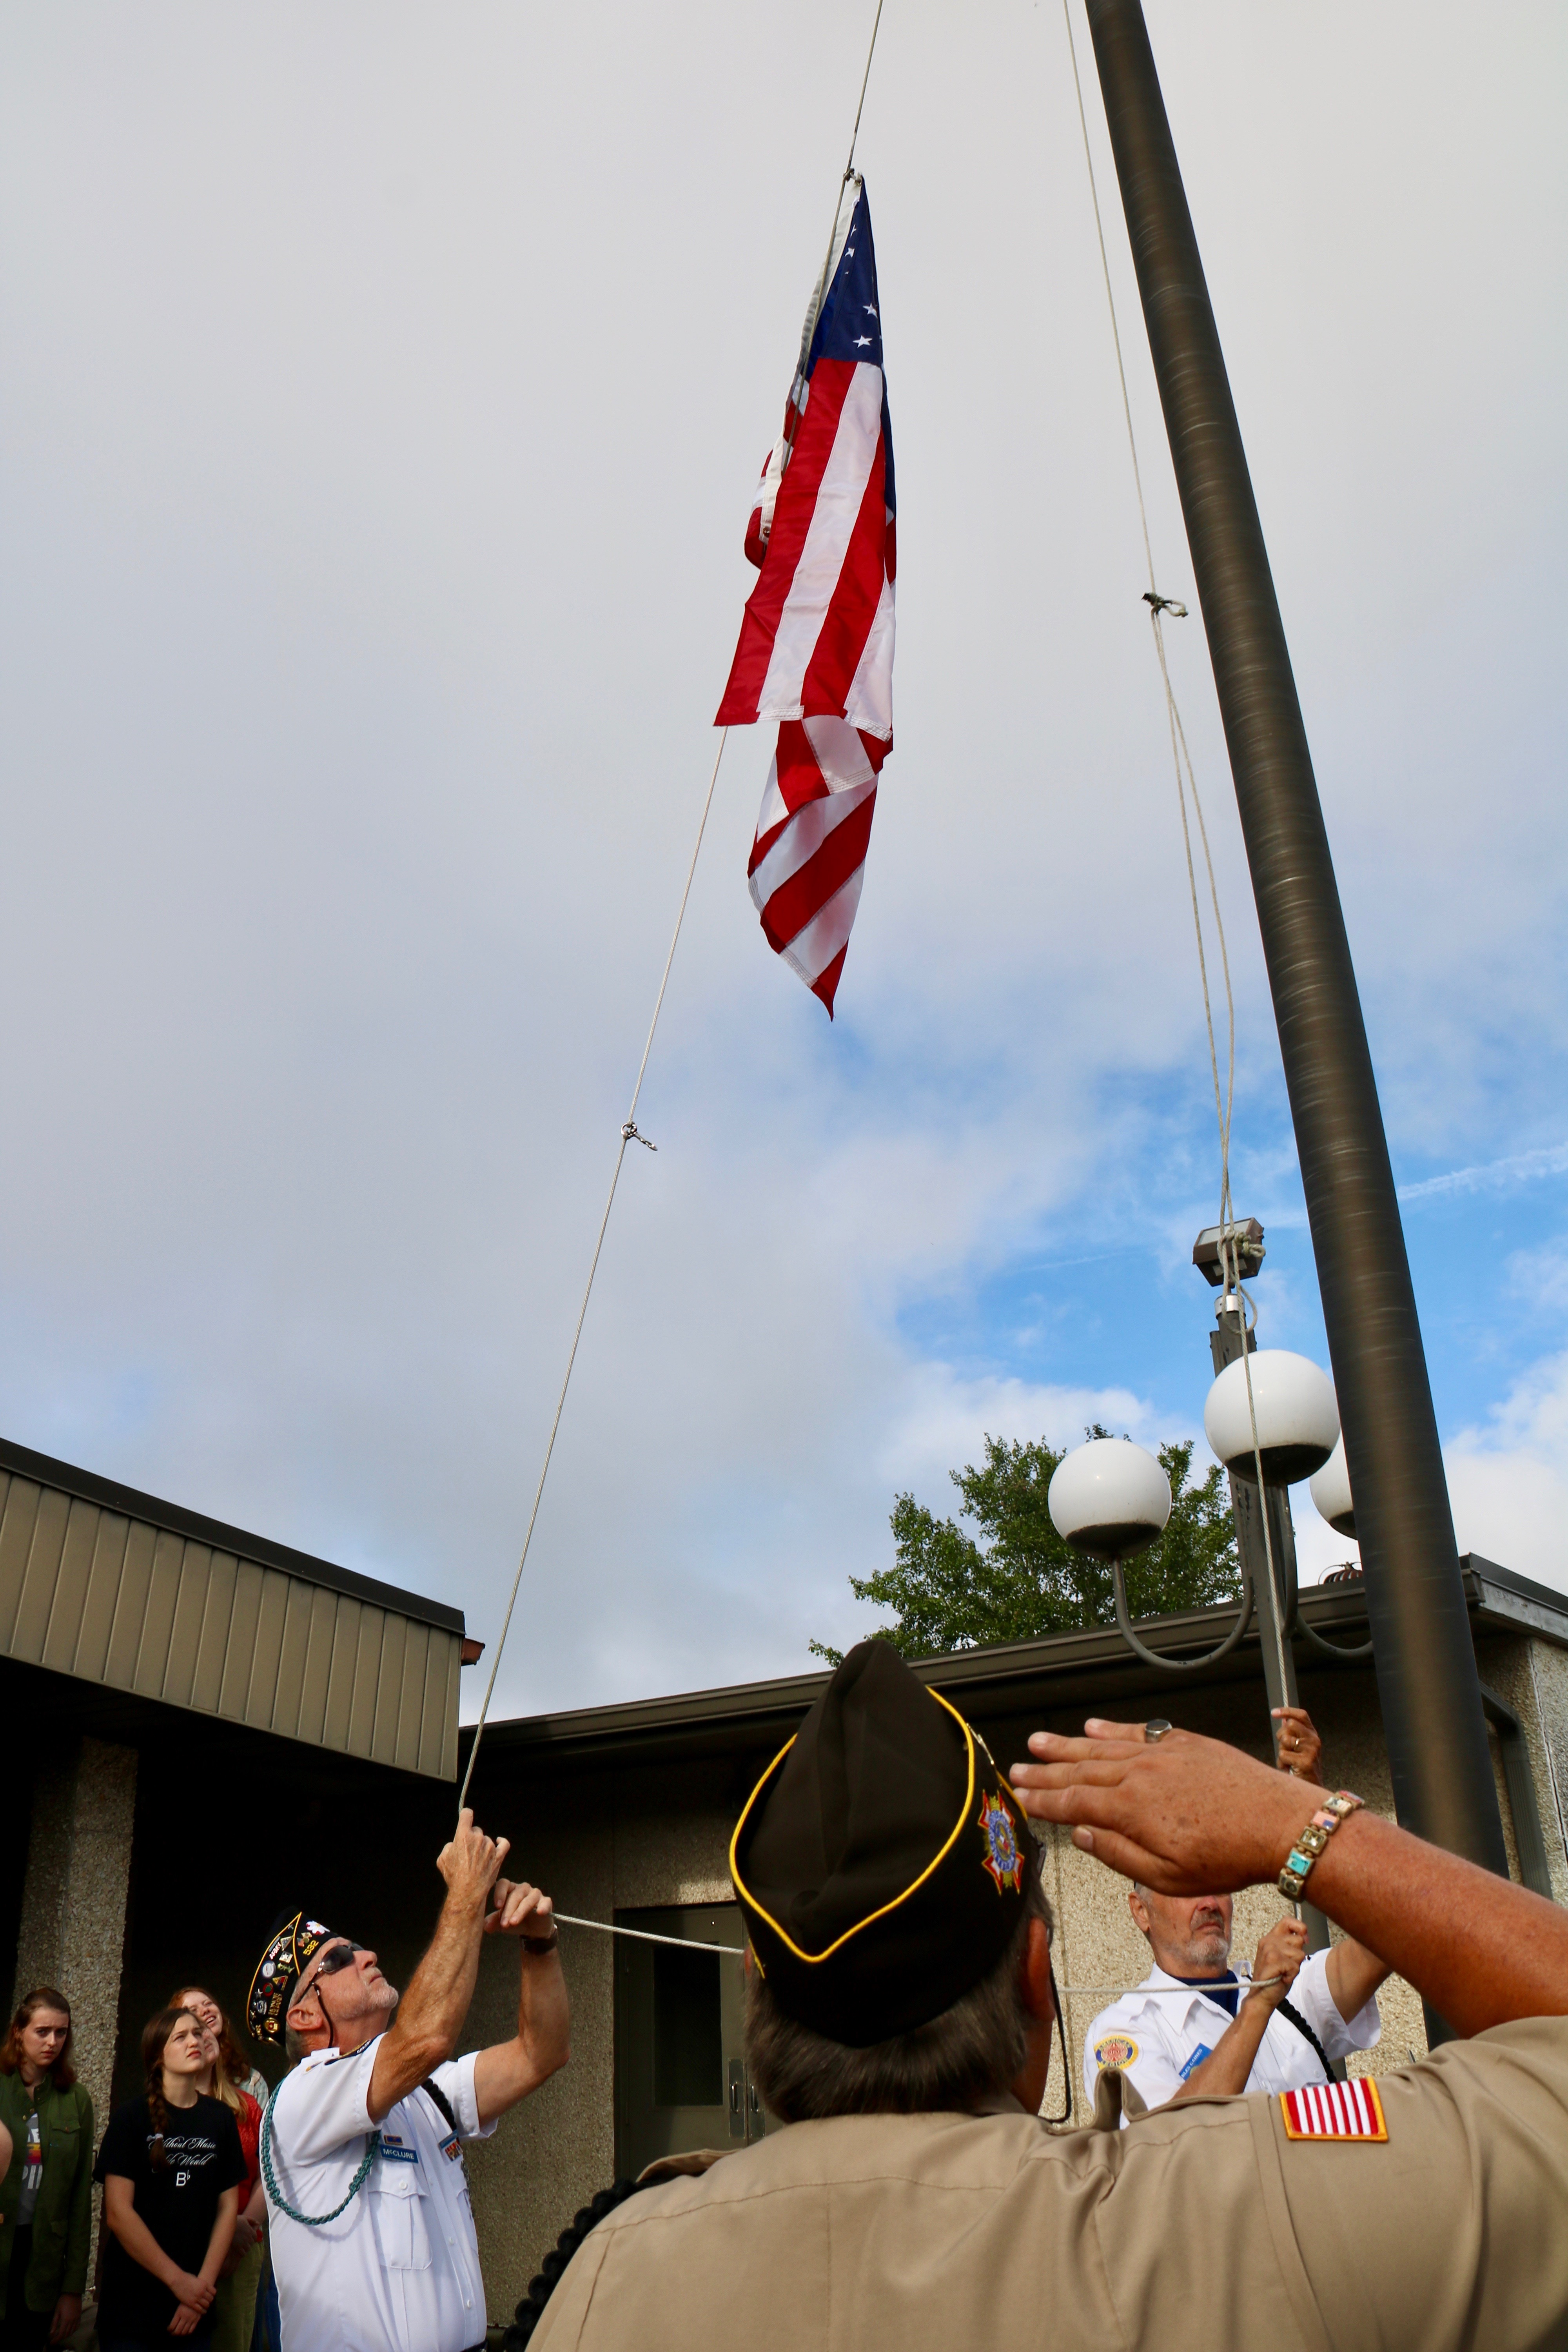 Dwight McClure, member of American Legion Post 532 in Hayesville, works to hoist an American flag at Tri-County Community College's annual Patriot Day ceremony on Sept. 11, 2018.